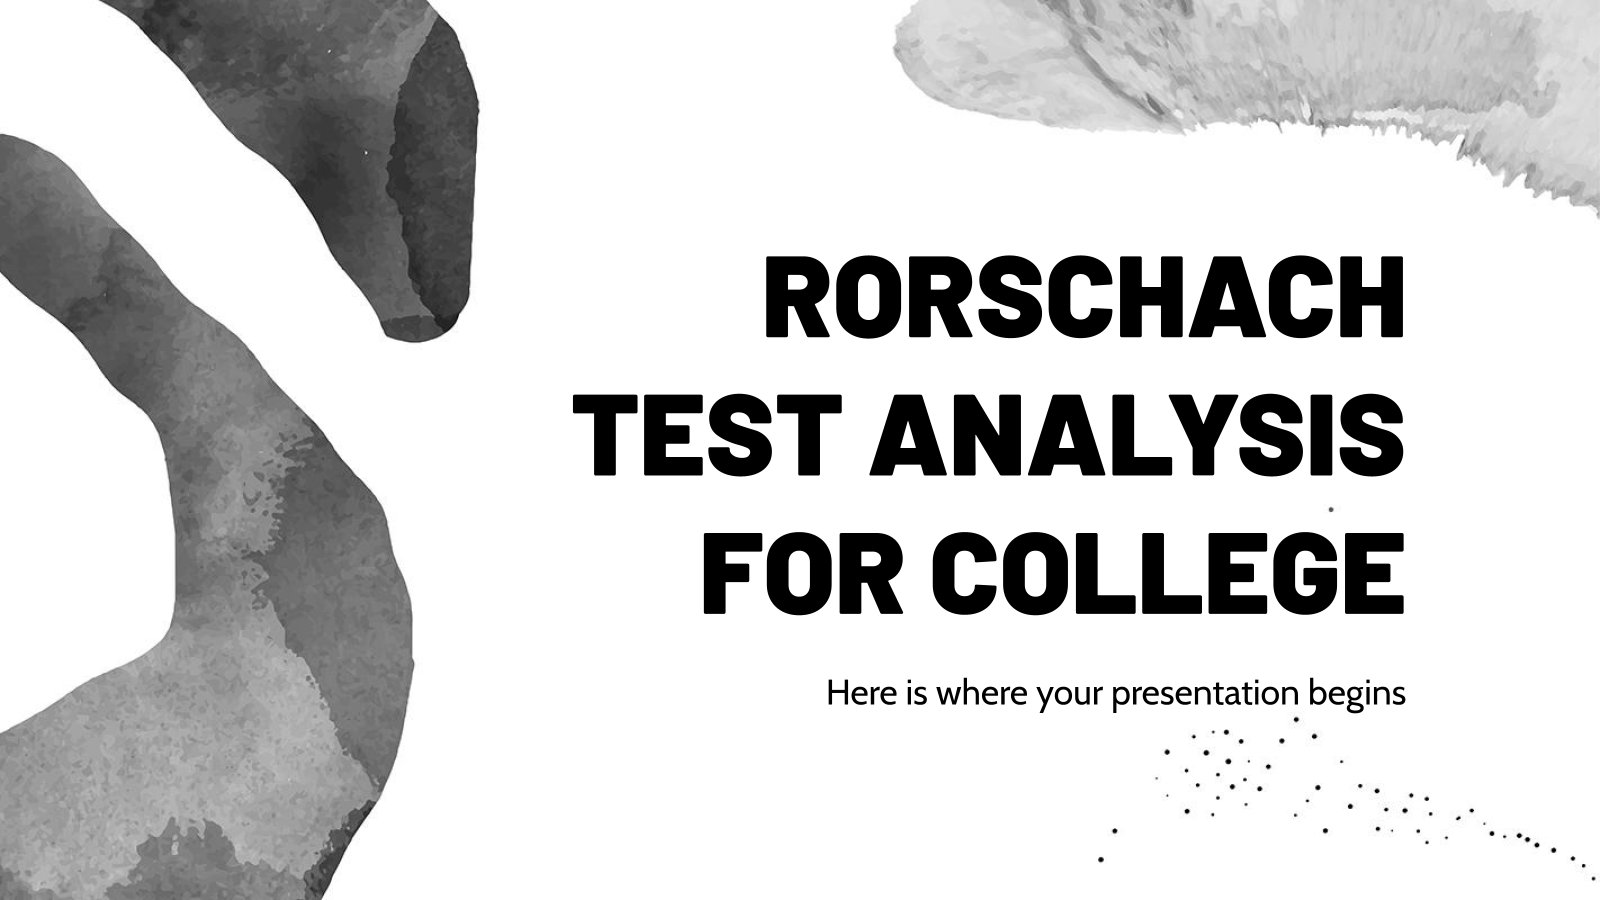 Rorschach Test Analysis for College presentation template